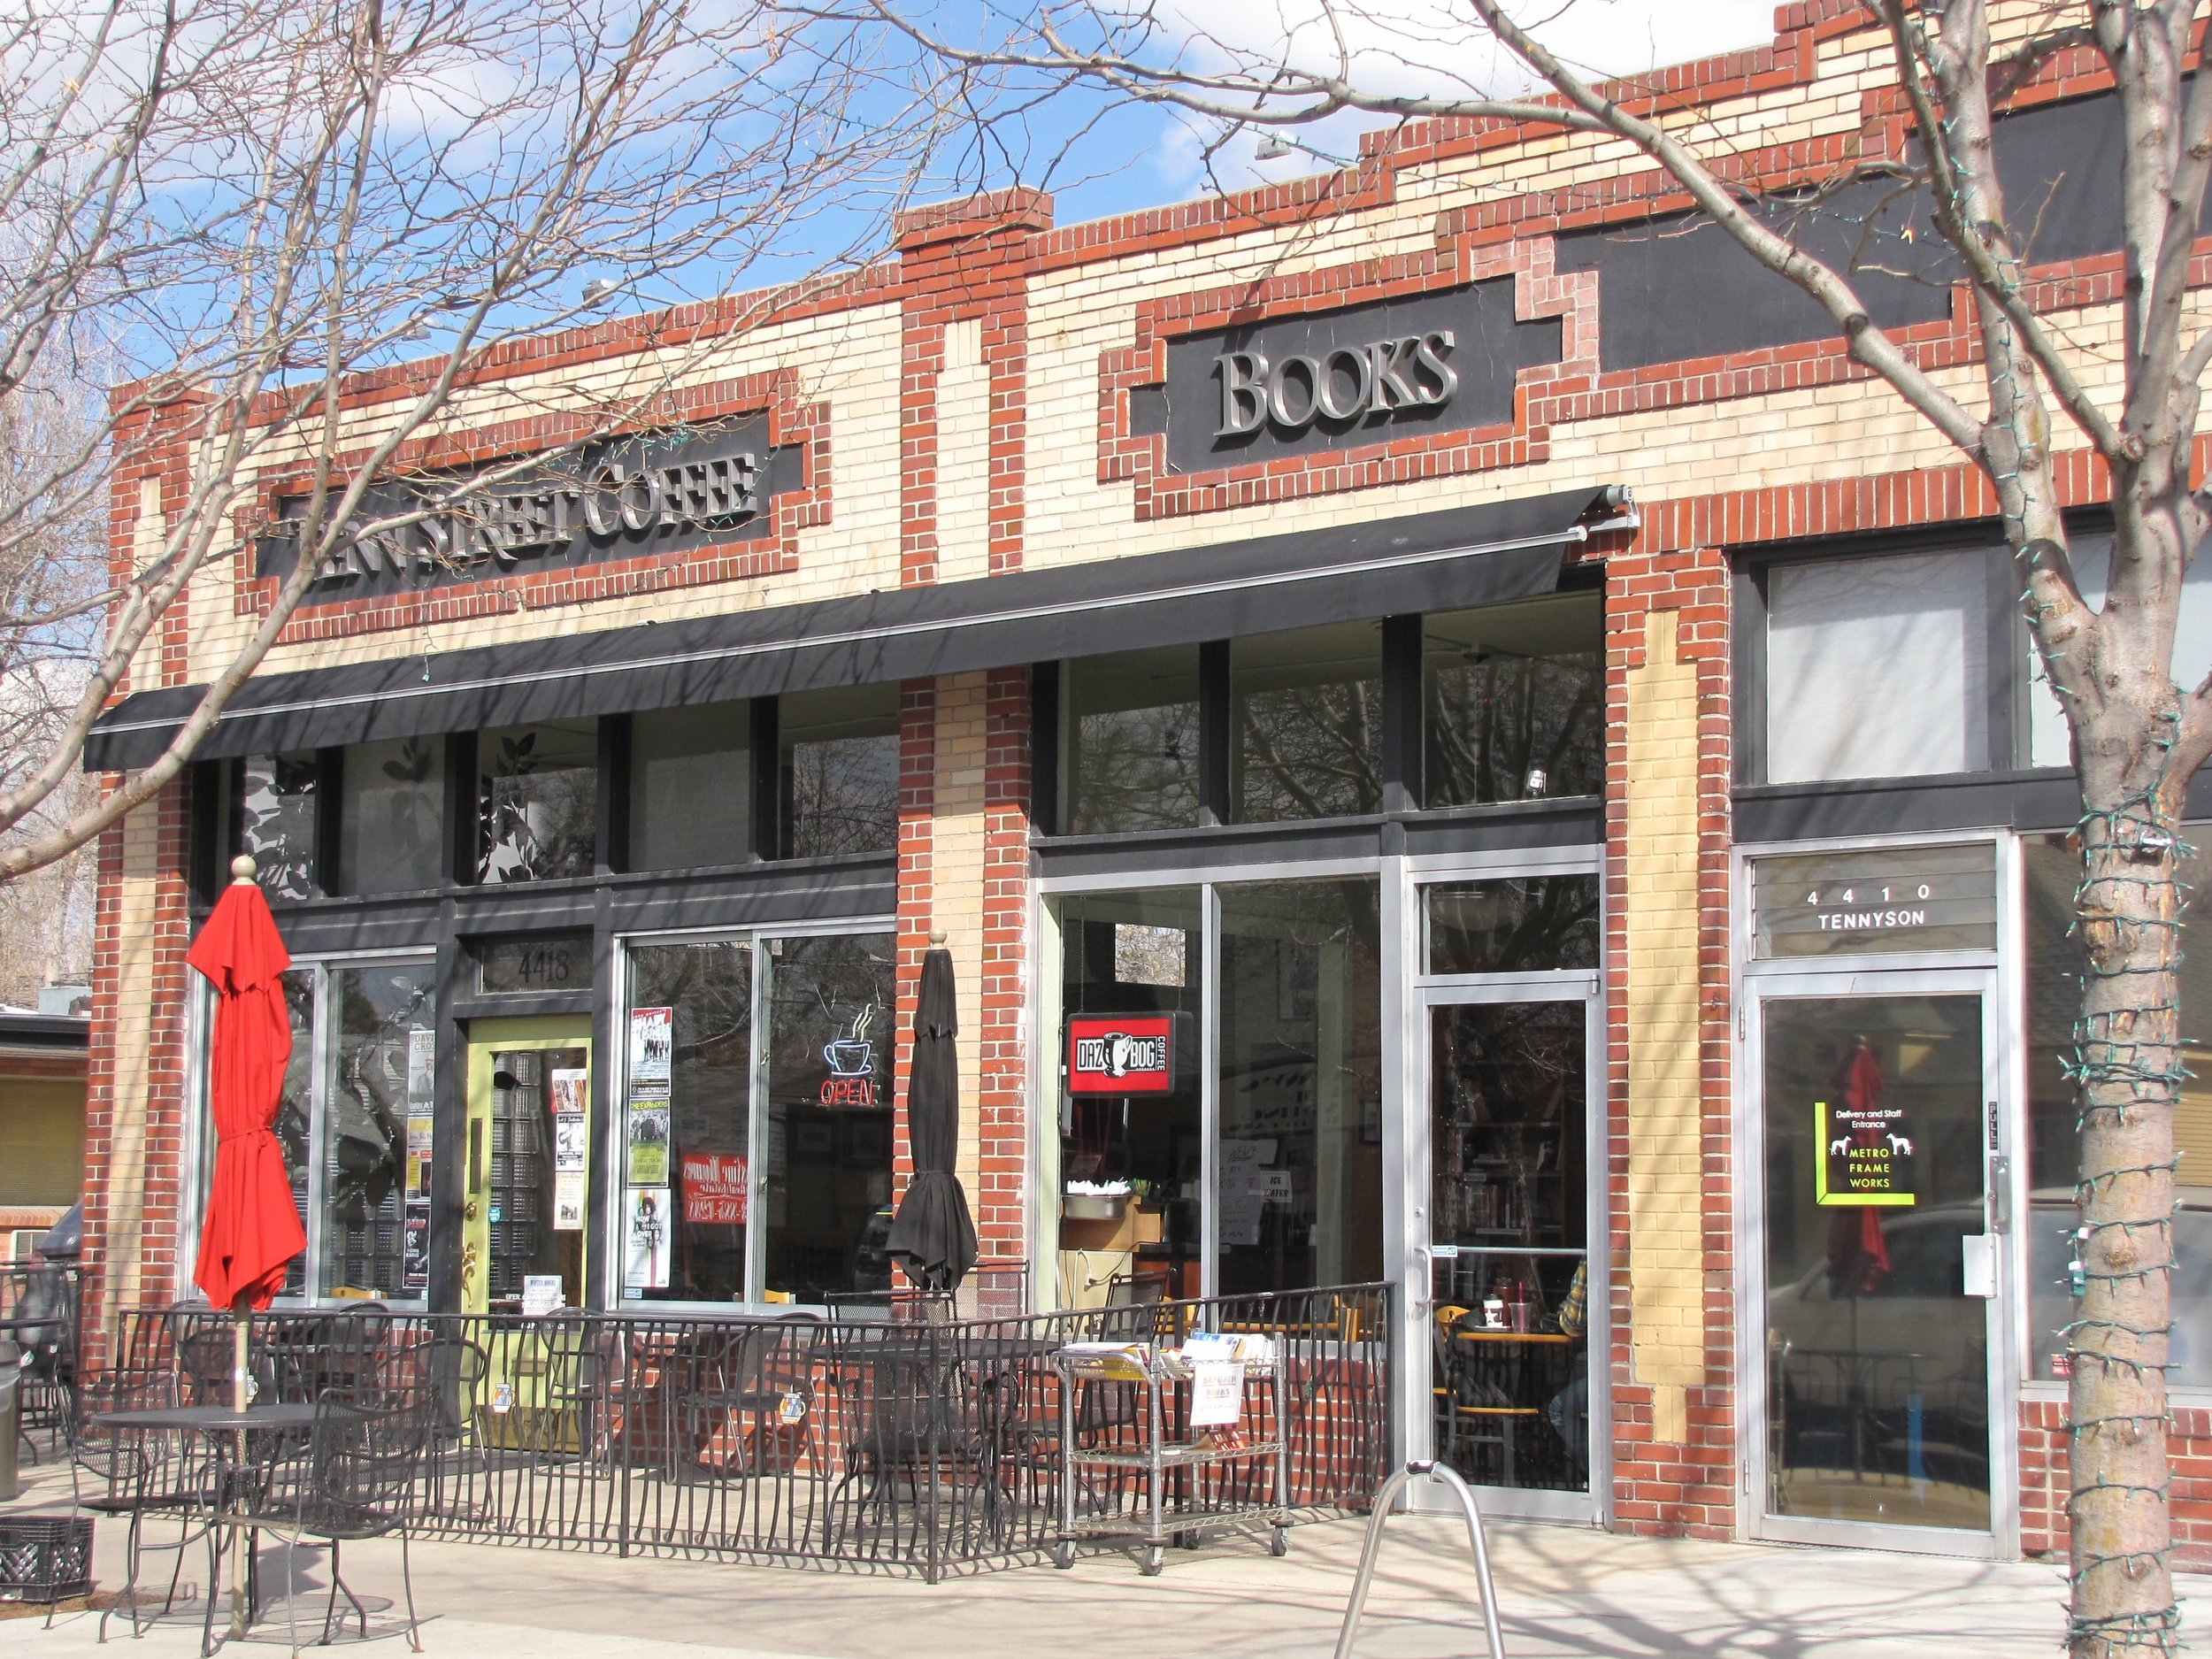 The home of Tennyson Arts District, a highly sought out place to call home with an abundance of activity. Denverites love Berkeley for its many restaurants, shops, galleries and parks. A quiet neighborhood with entertainment just steps away. Convenient access to I-70.